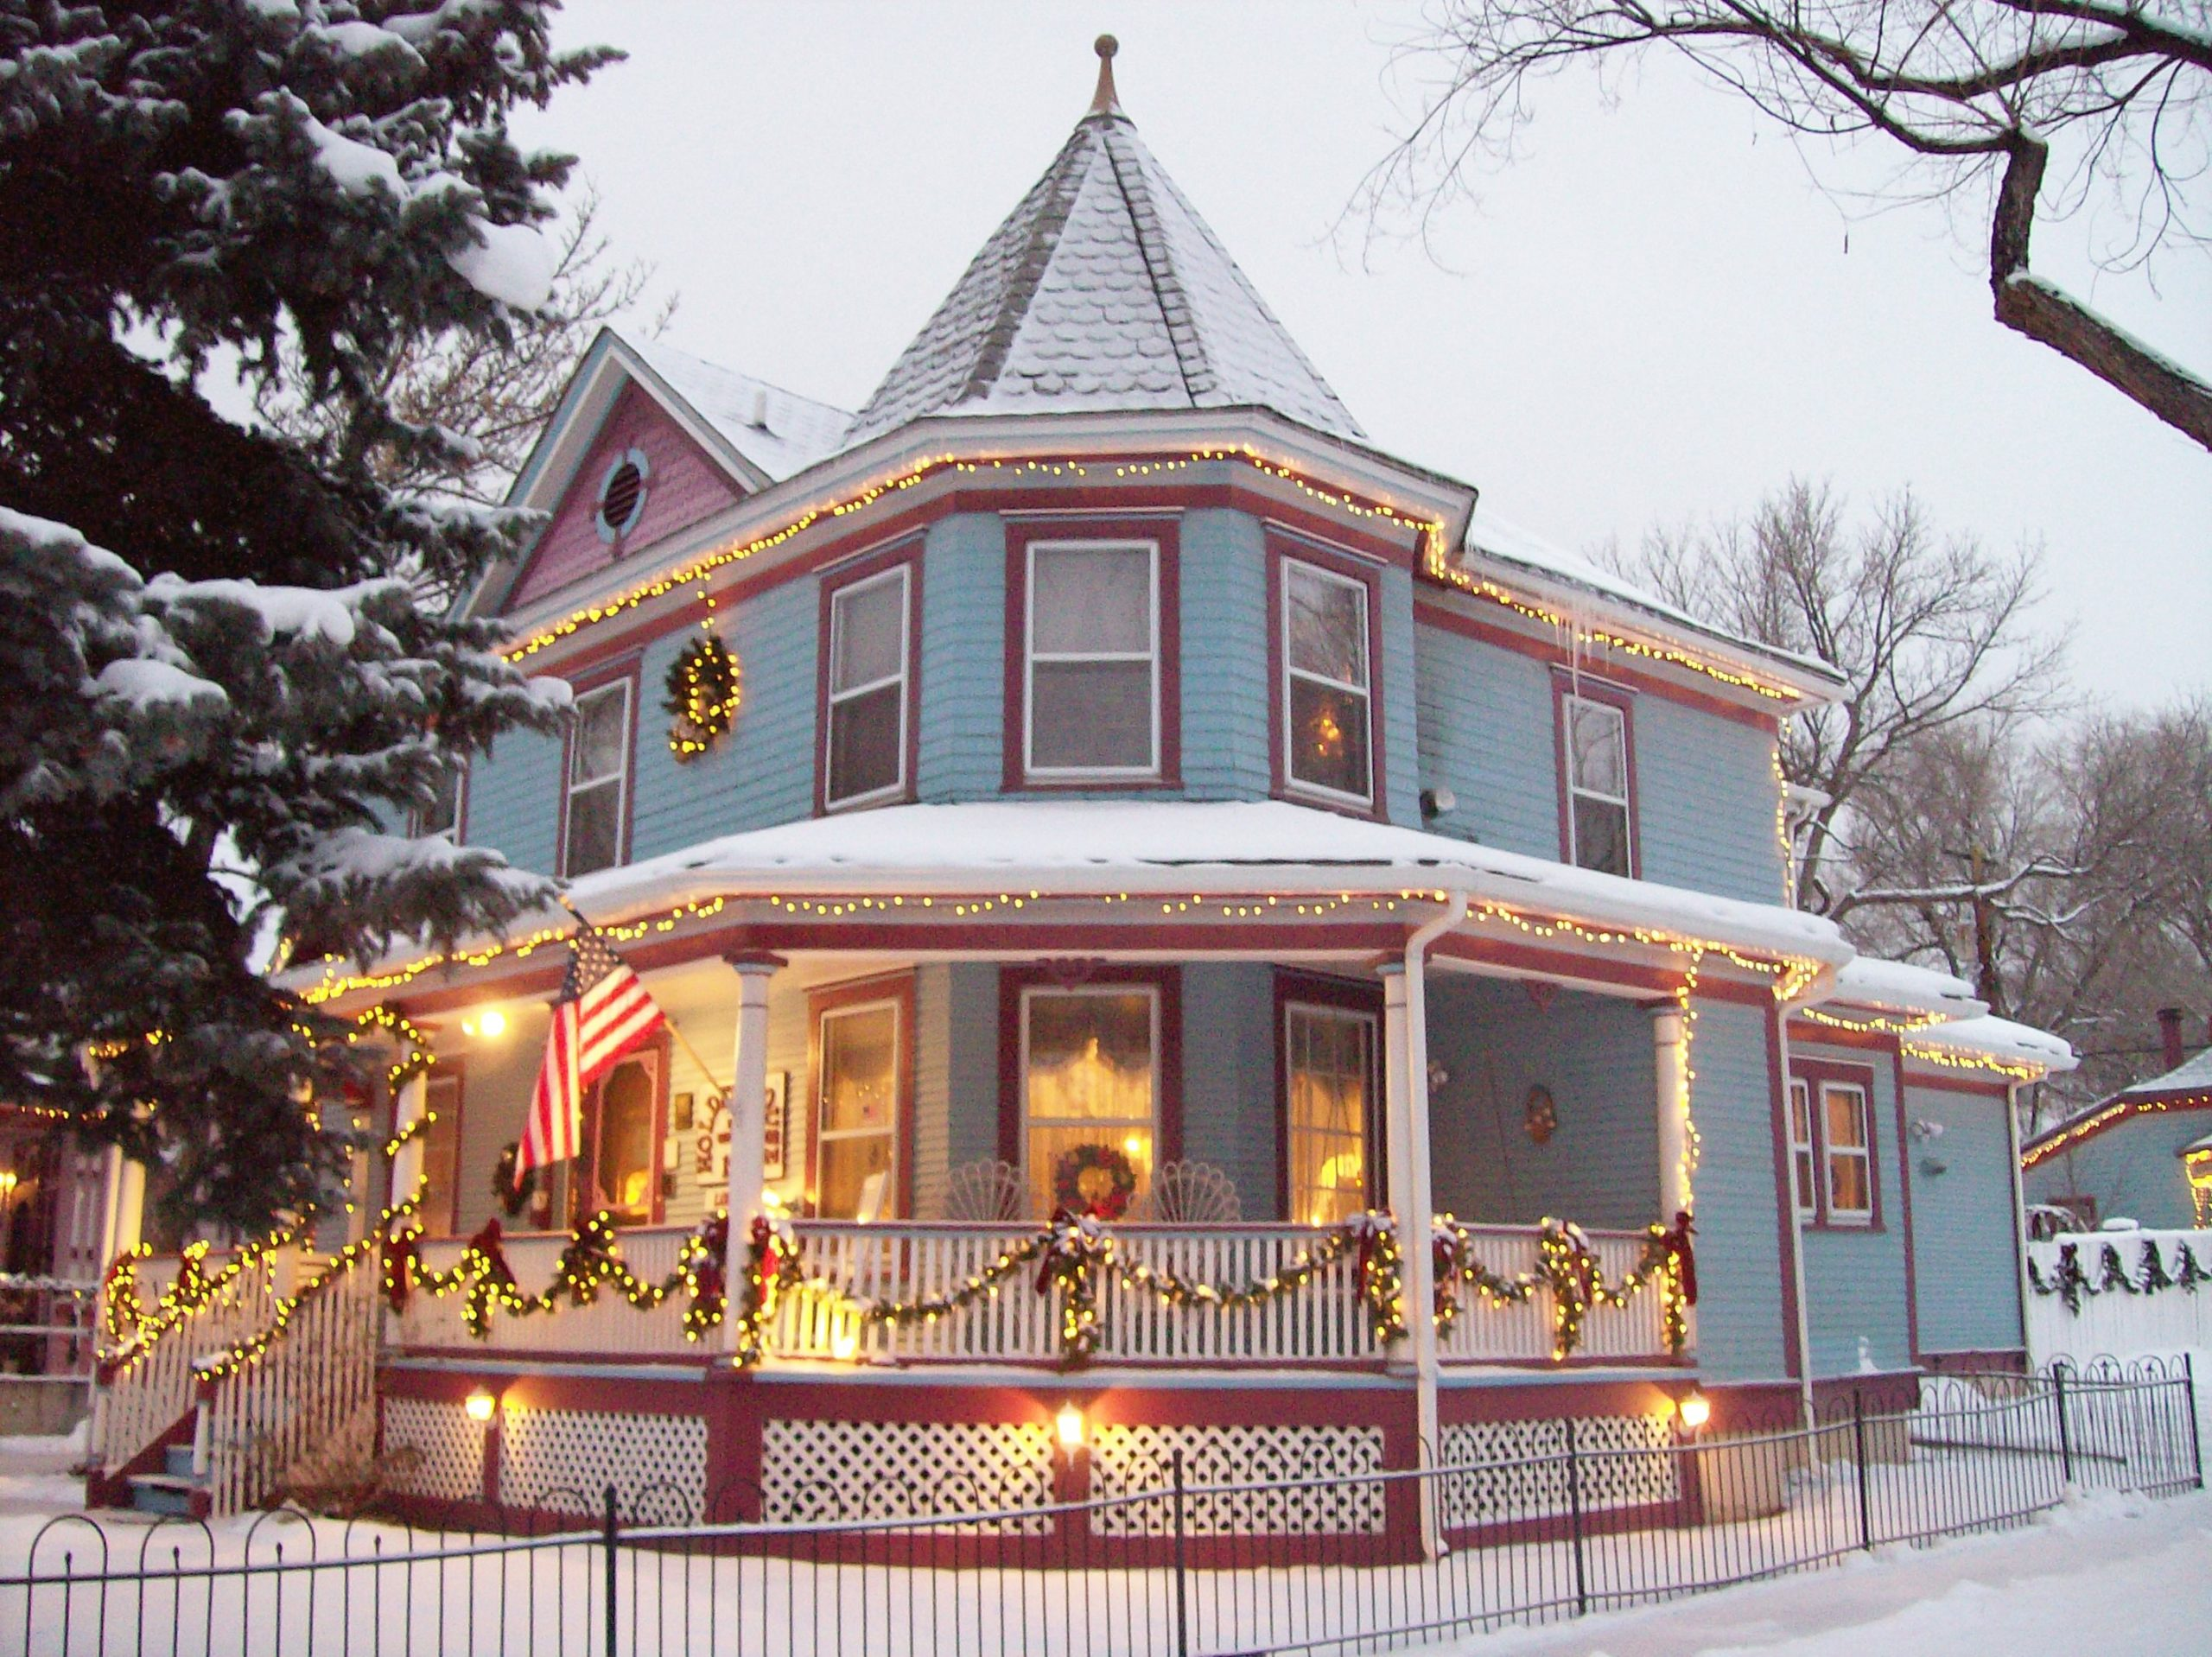 Christmas at Holden House features lights, decorations and warm hospitality